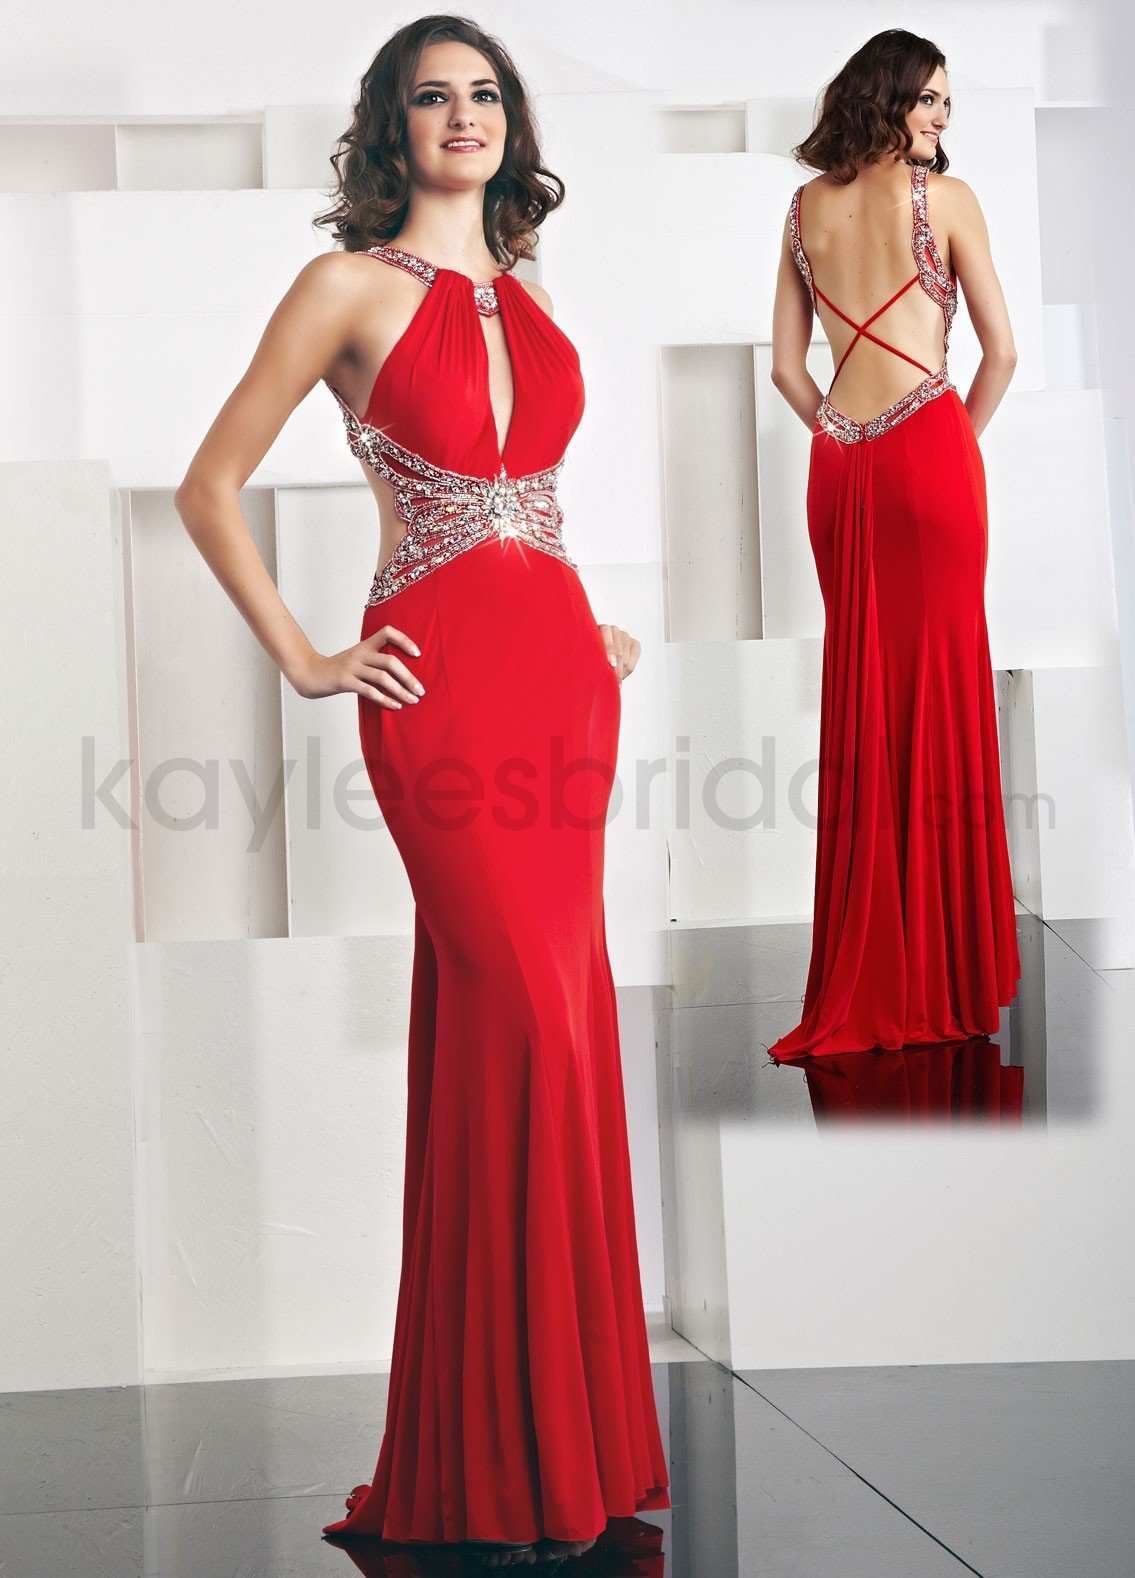 Wedding Occasion Dresses girls special occasion dresses gowns and dress ideas separates for wedding guests more